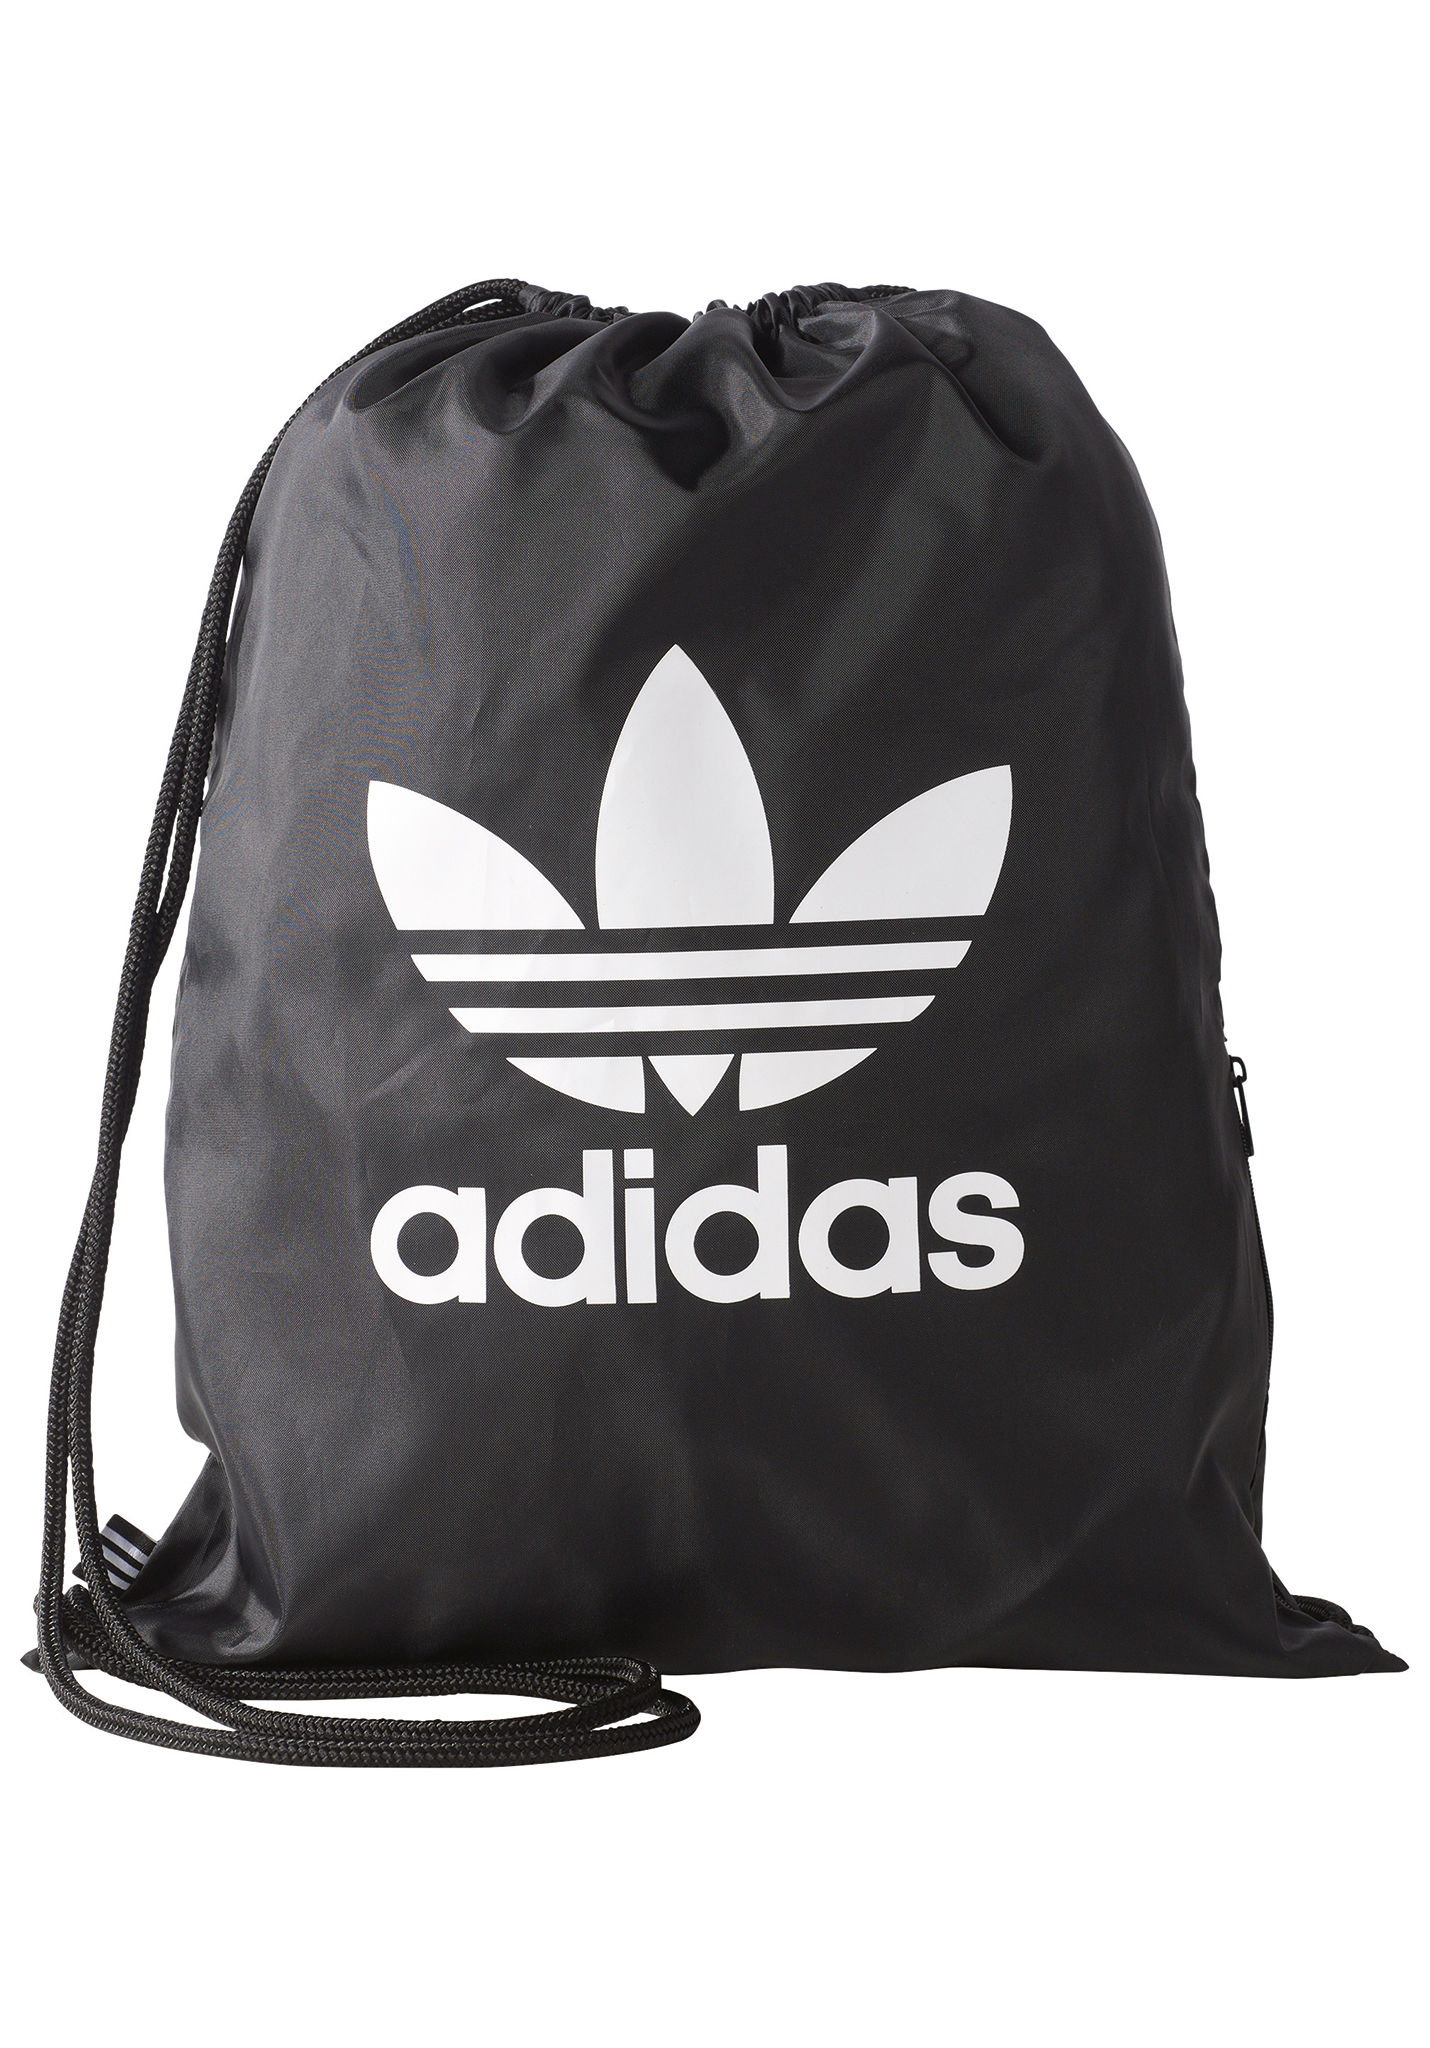 Adidas Sports Bag With Wheels   ReGreen Springfield 243c5819f7